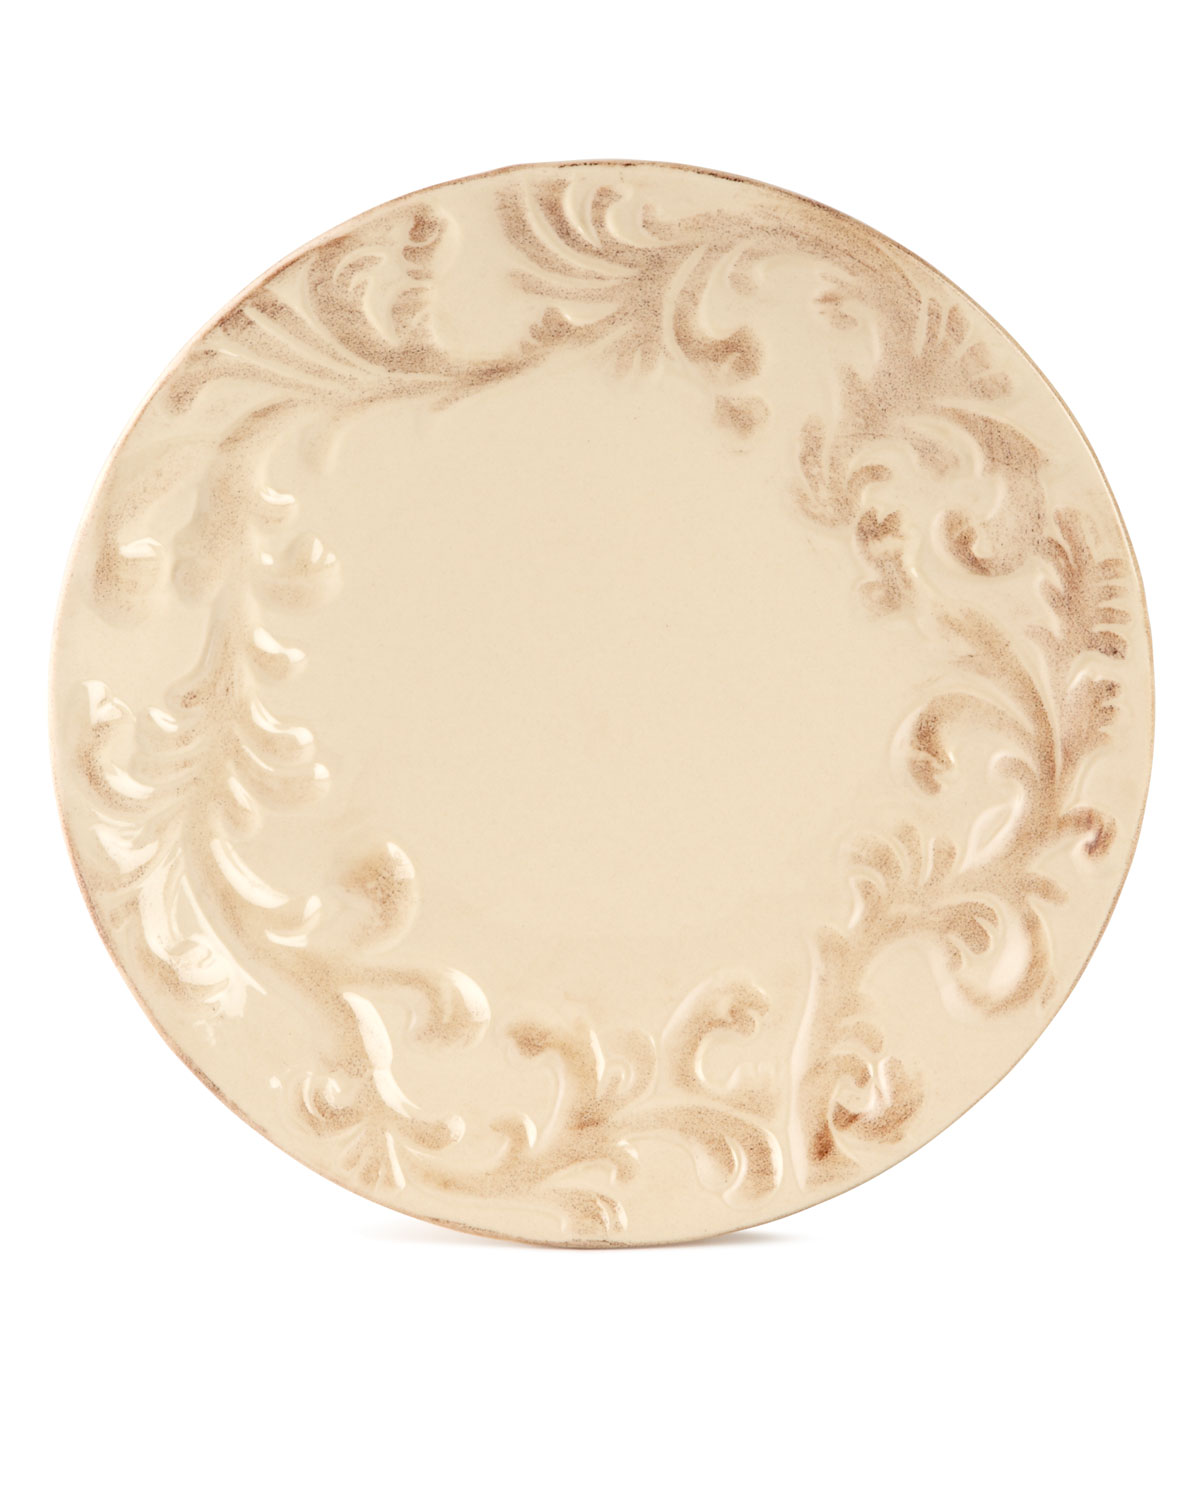 G G Collection Dinner Plates, Set of 4